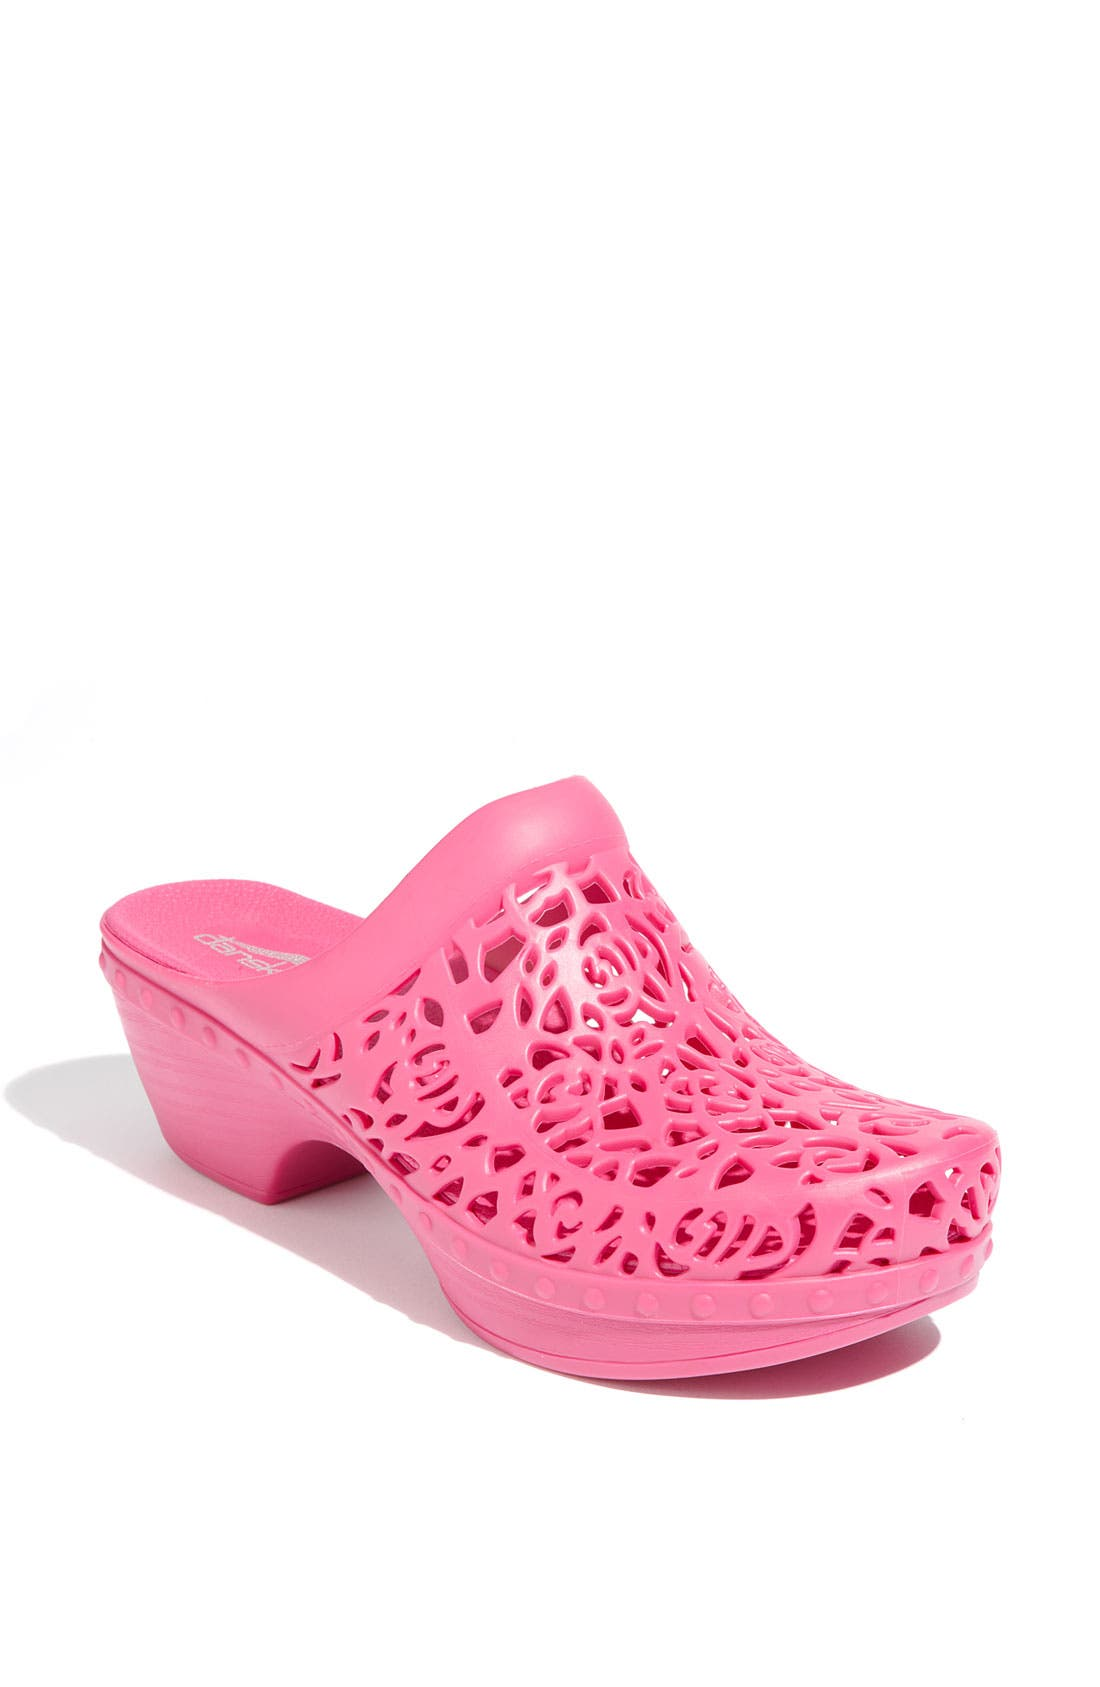 Alternate Image 1 Selected - Dansko 'Pippa' Clog